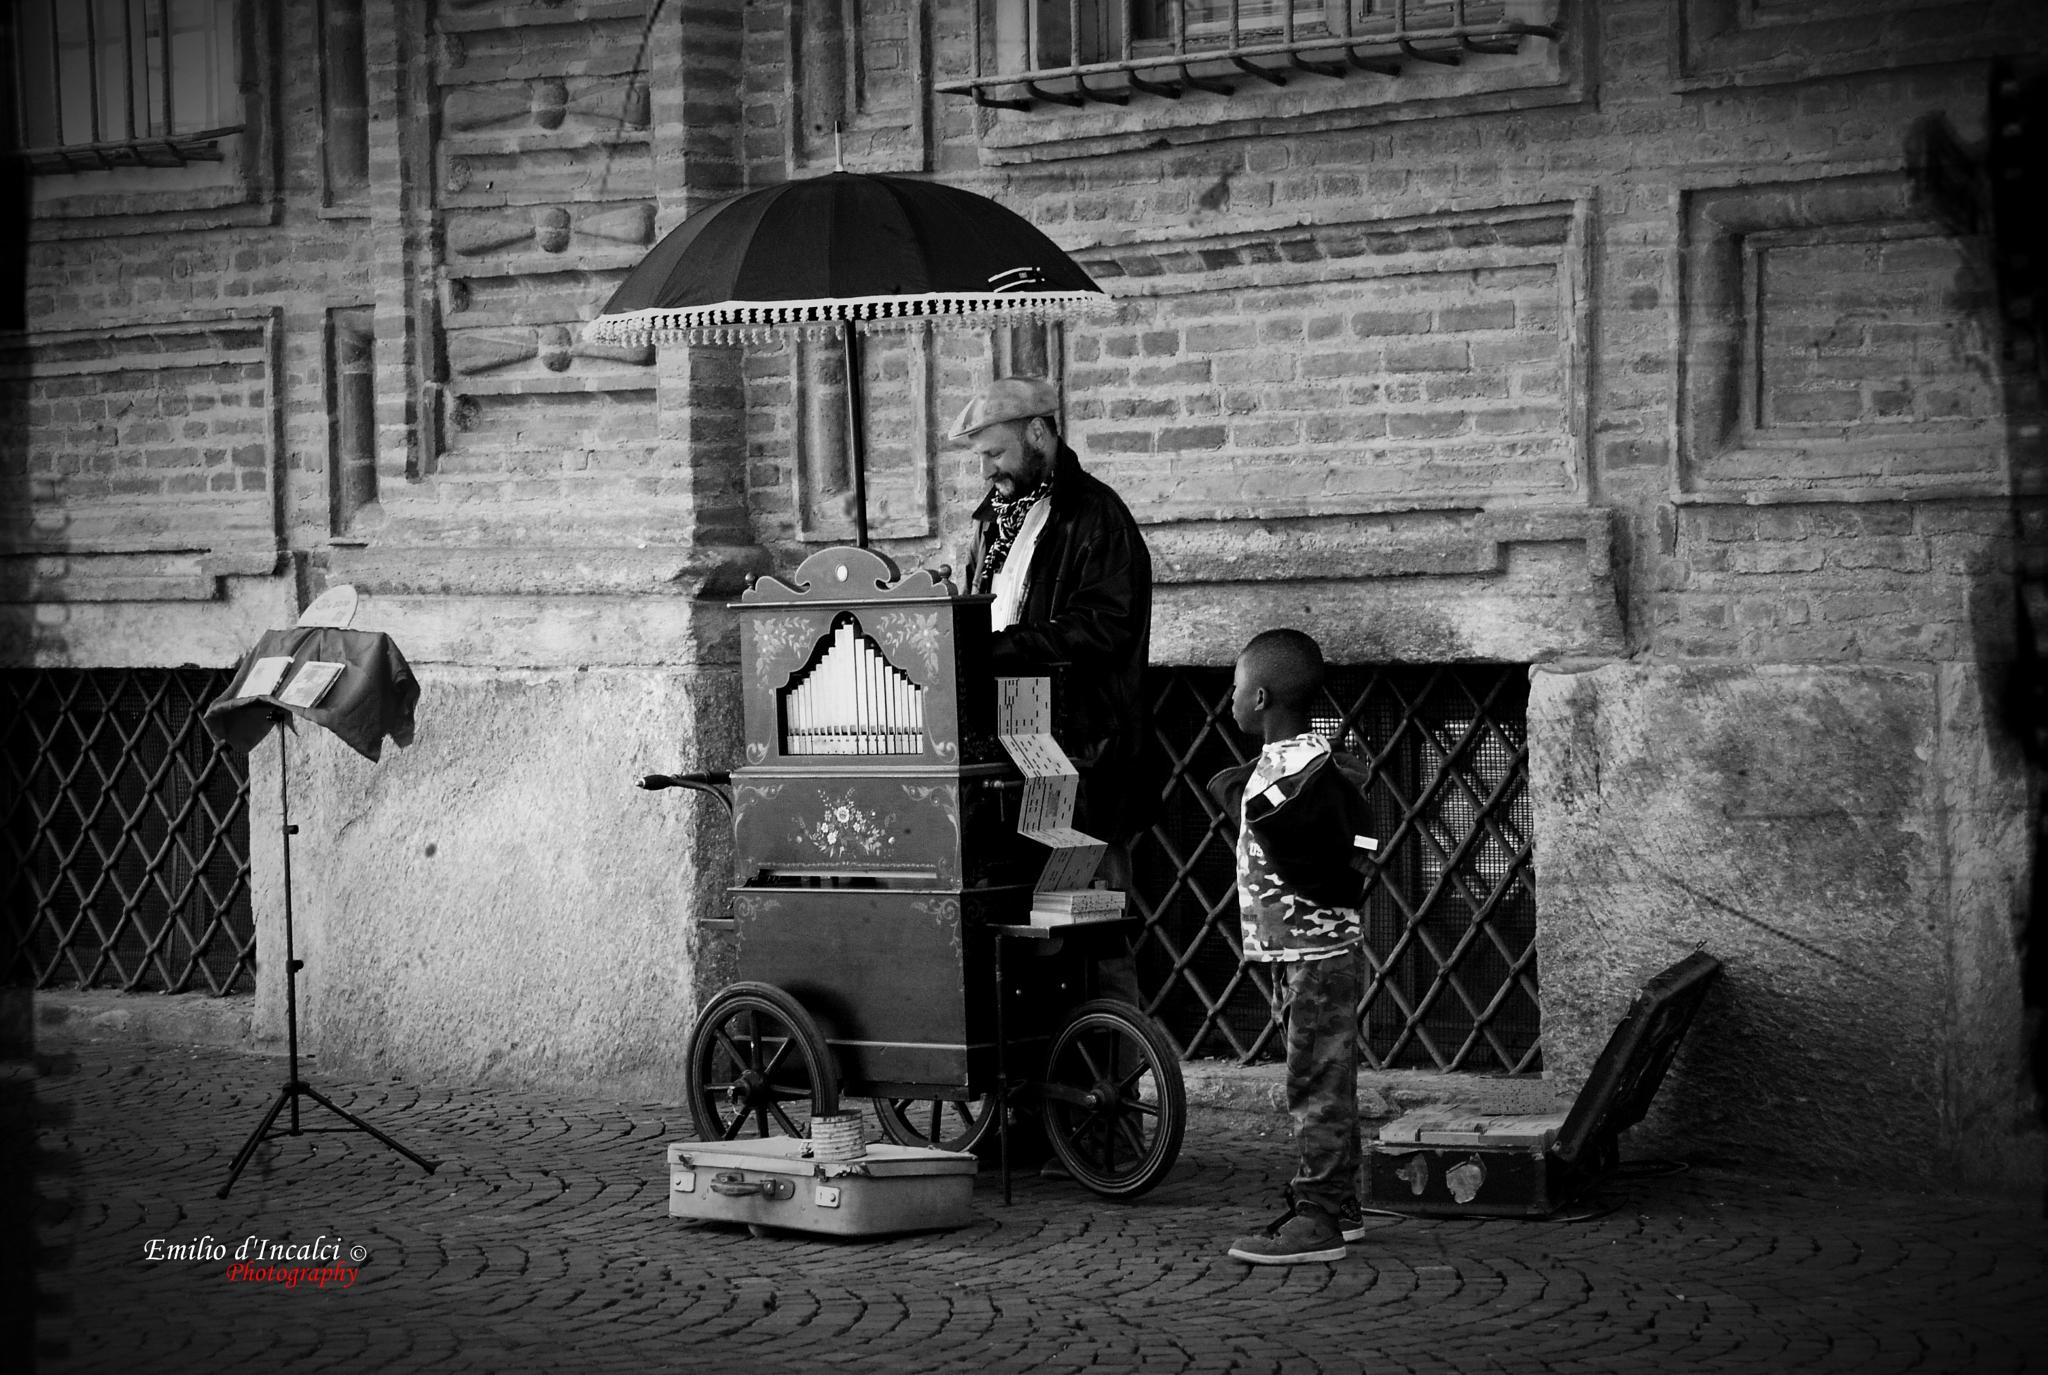 Street performer with Carillon by Emilio d'Incalci